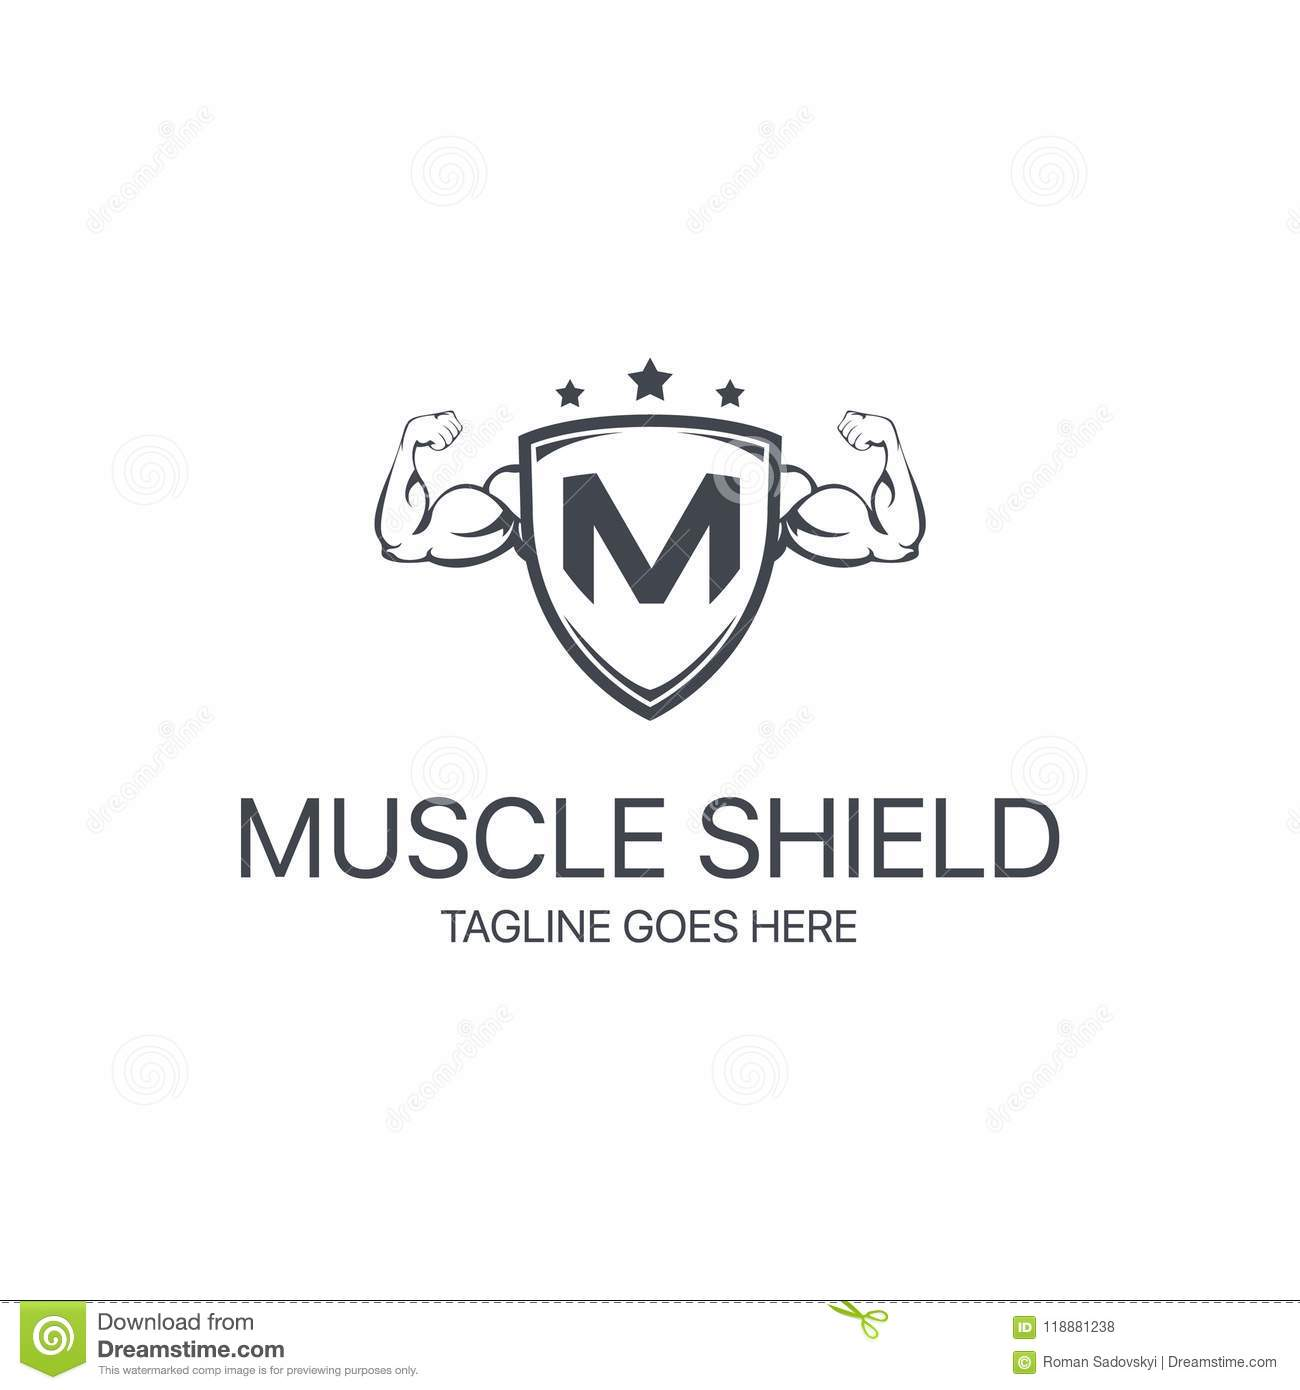 muscle shield logo stock vector illustration of concept 118881238